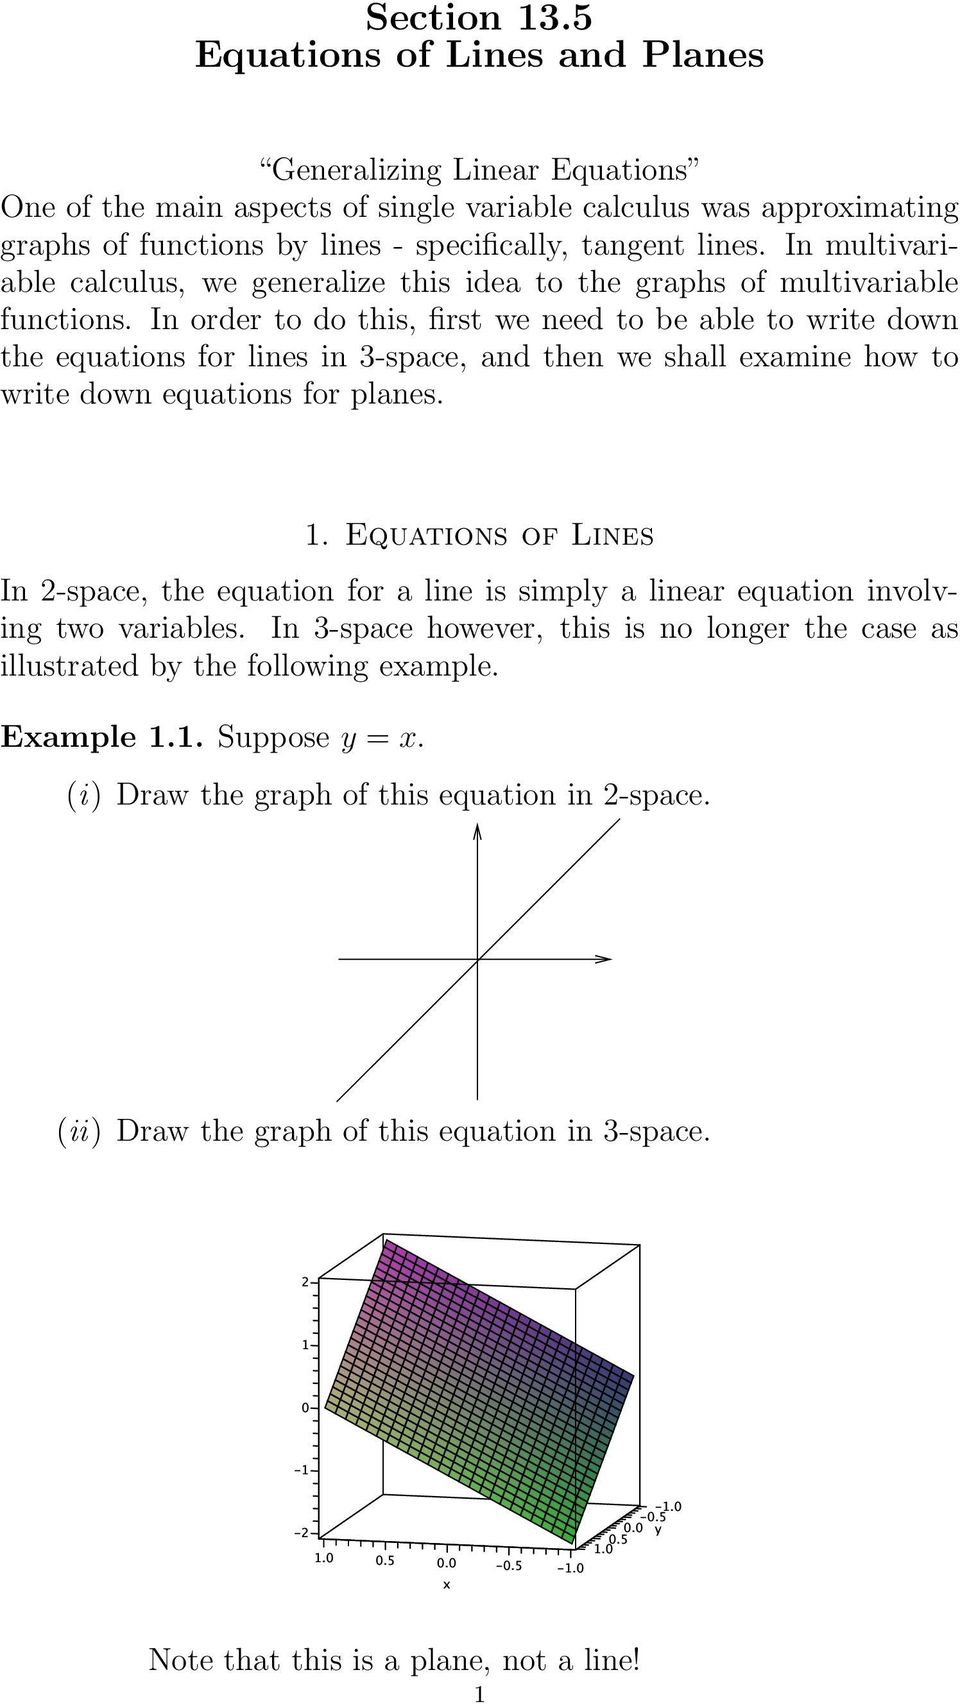 Section 13 5 Equations of Lines and Planes - PDF